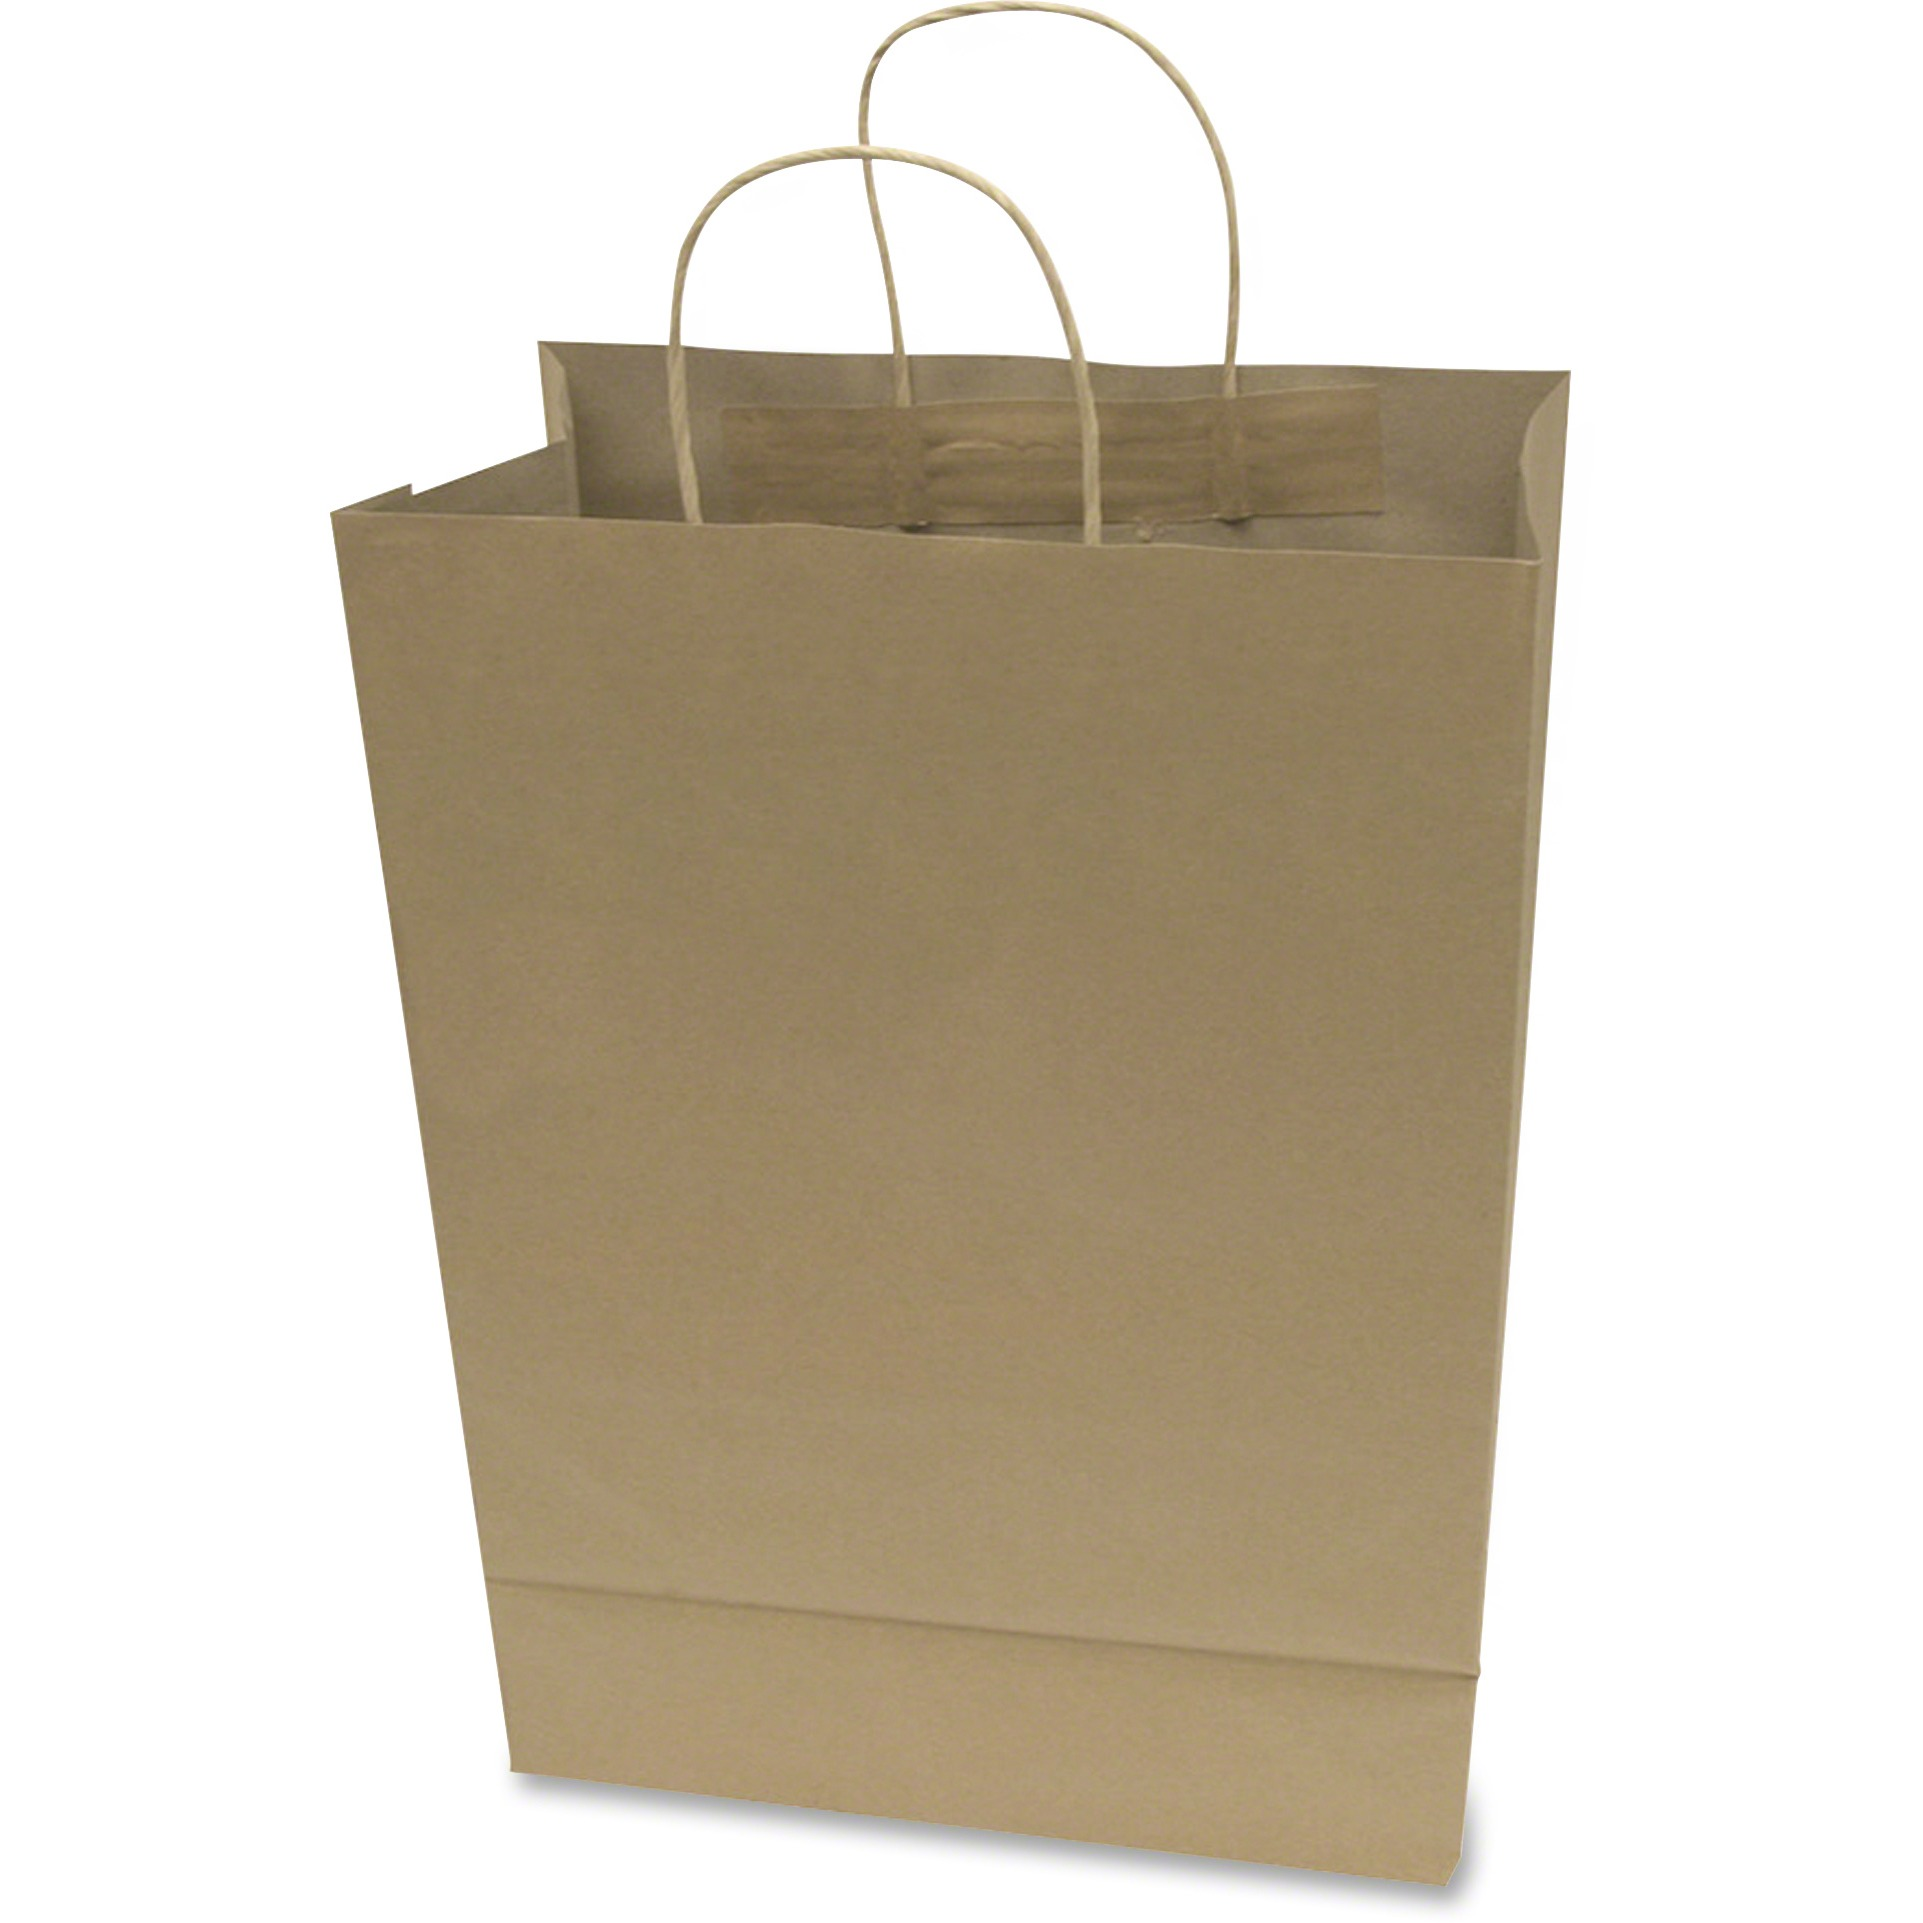 Premium Large Brown Paper Shopping Bags - Walmart.com